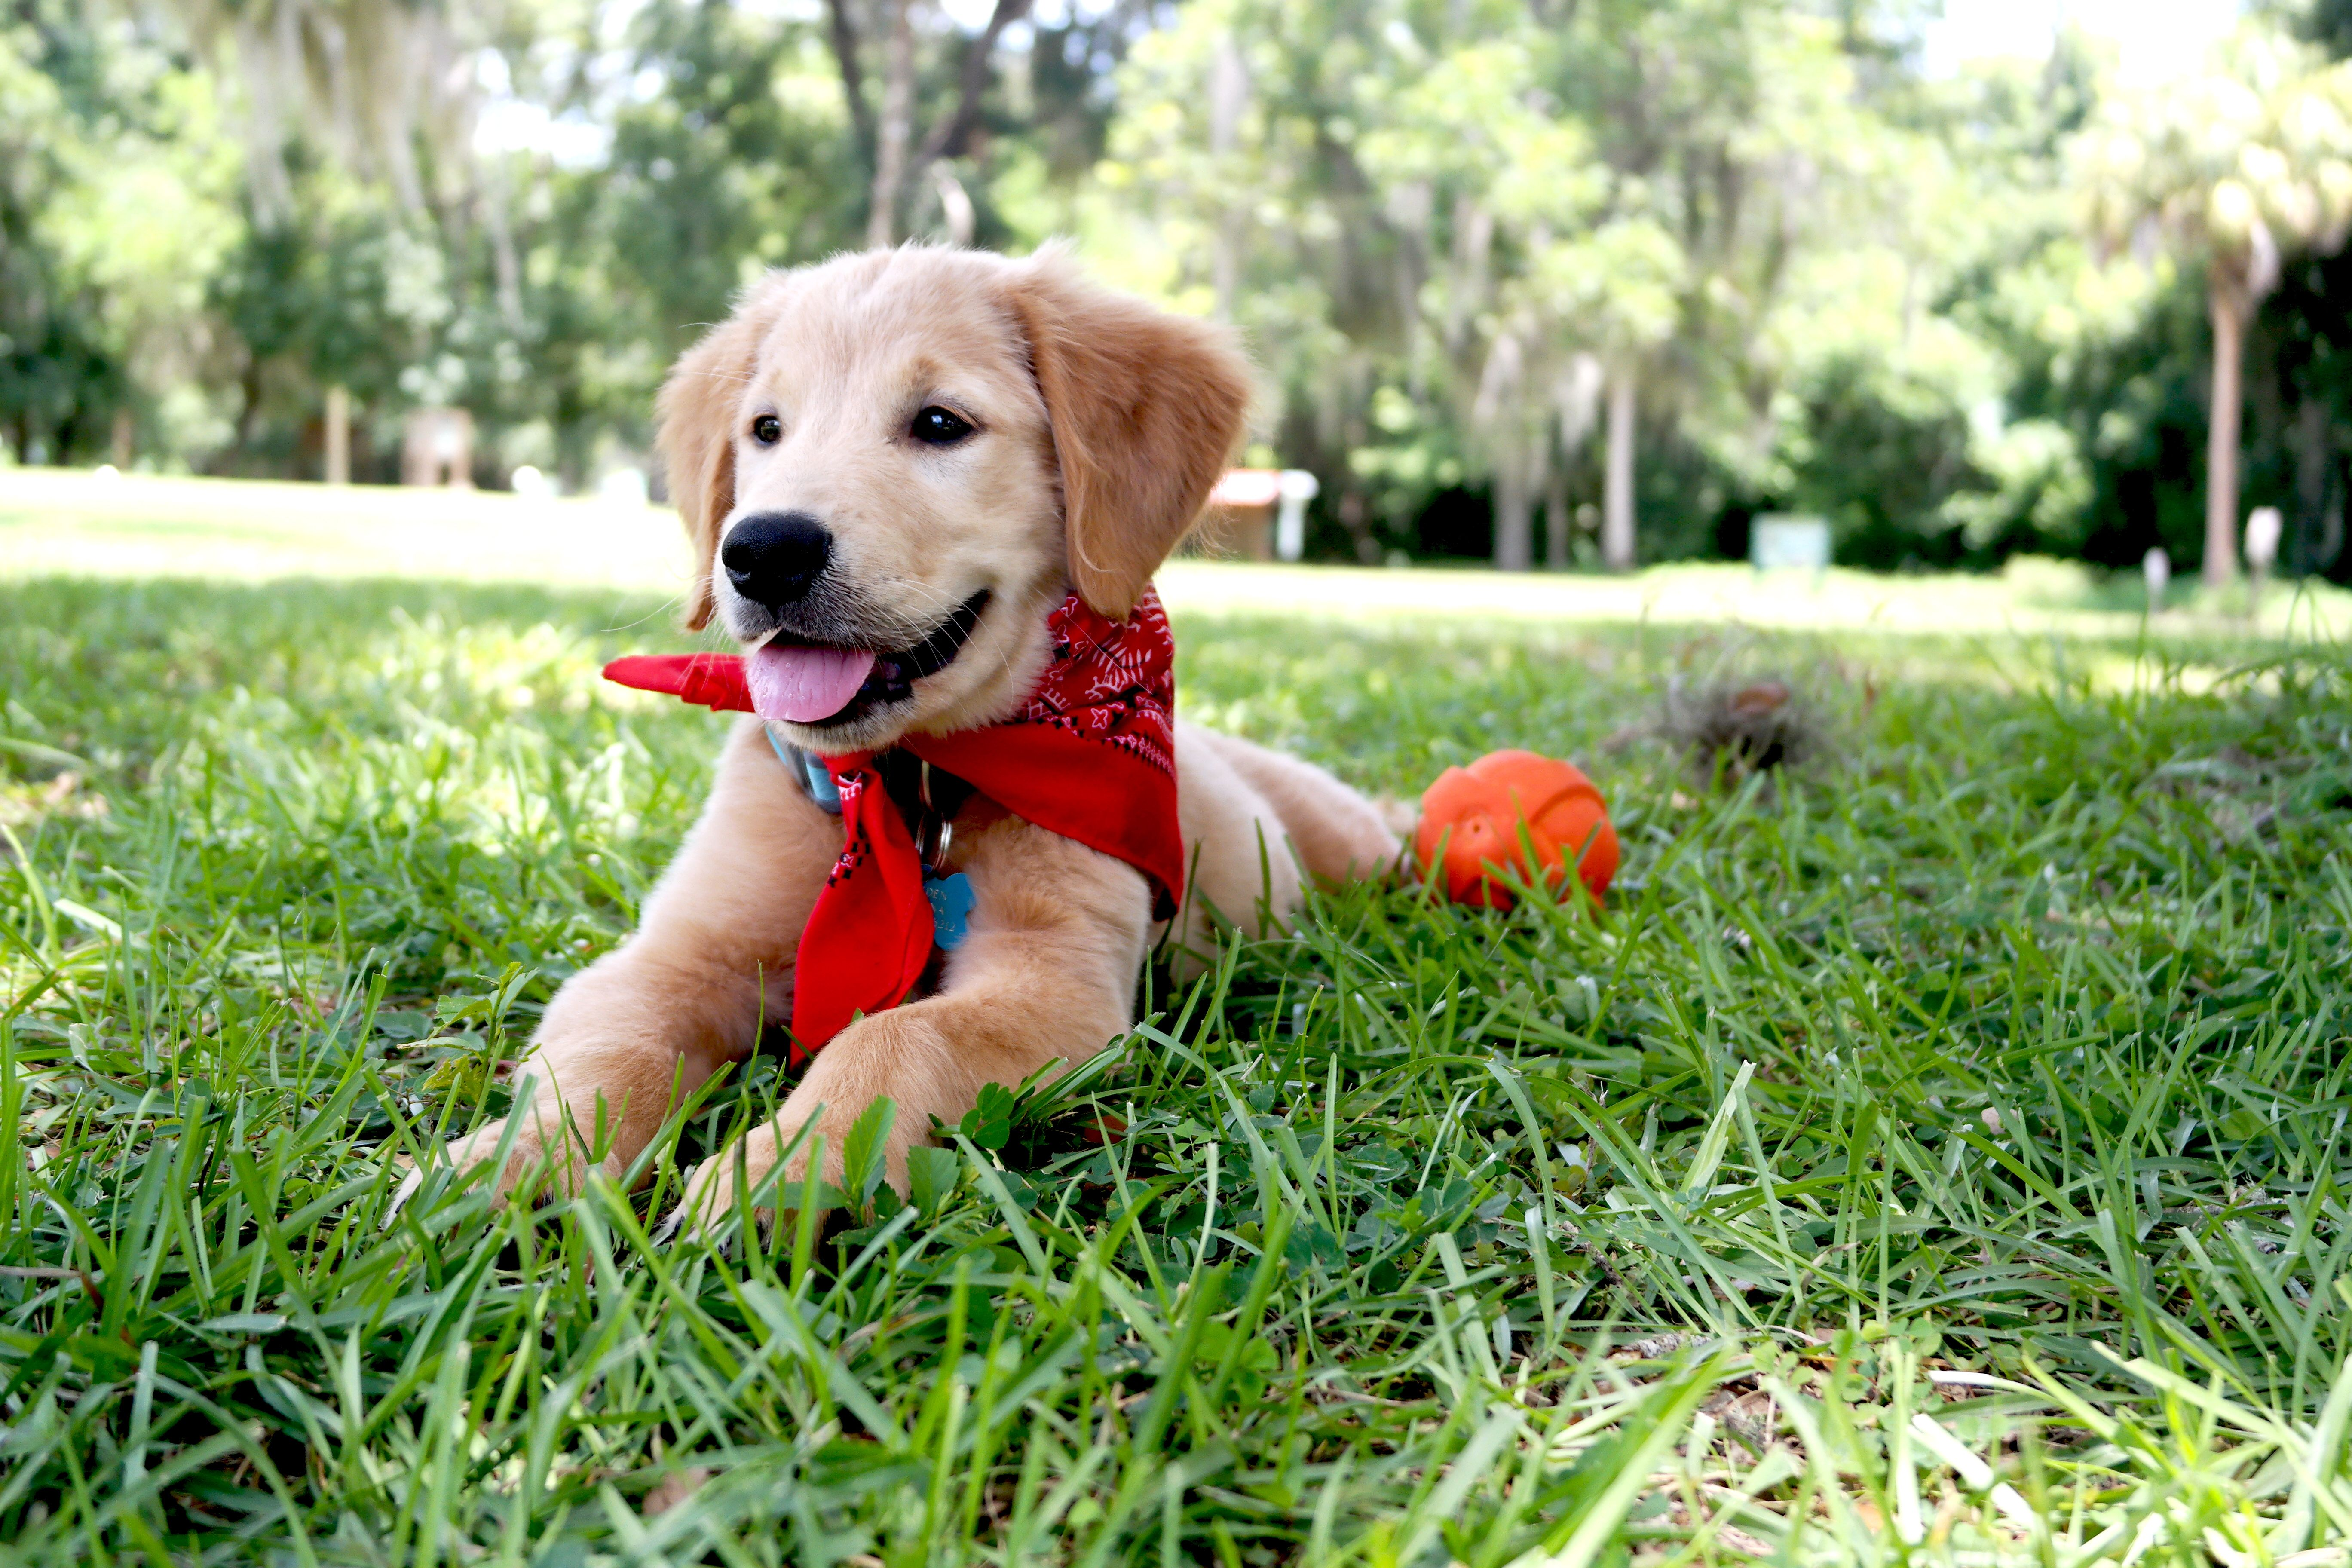 Brayden a golden retriever puppy hanging out at the park